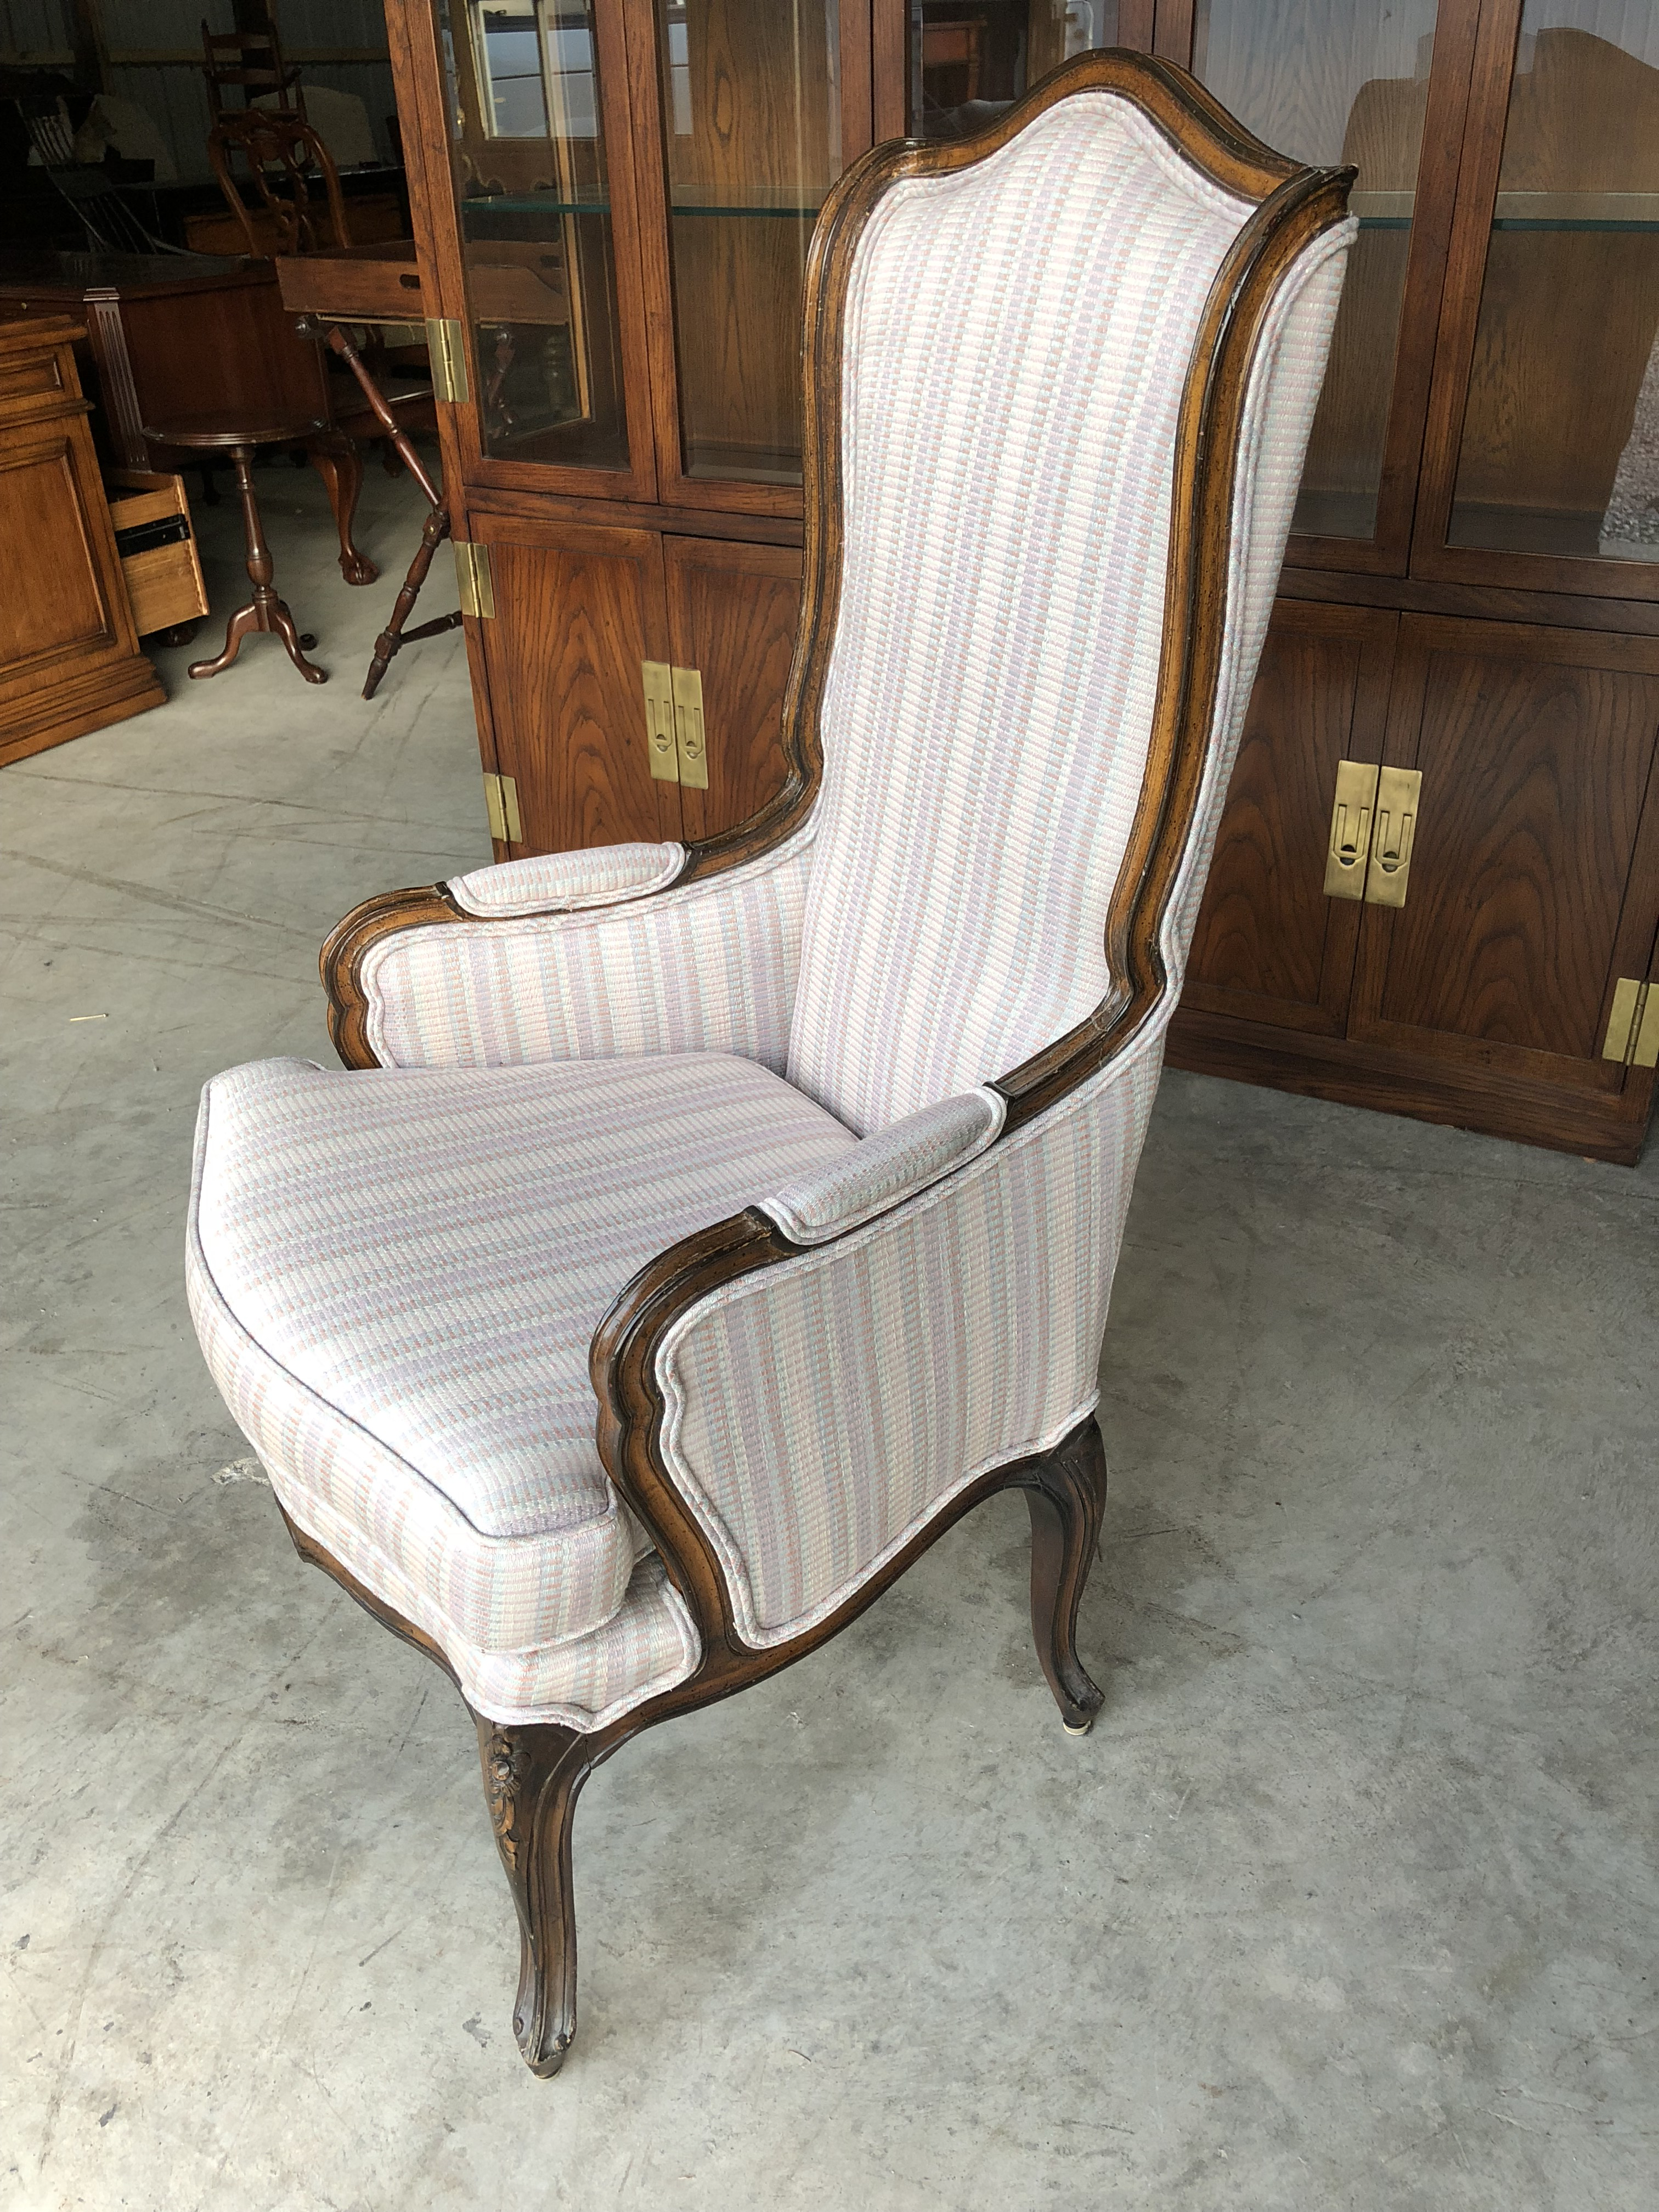 Vintage French Provincial Styled Wingchair. Great Diminutive Size That  Would Work Well As An Accent